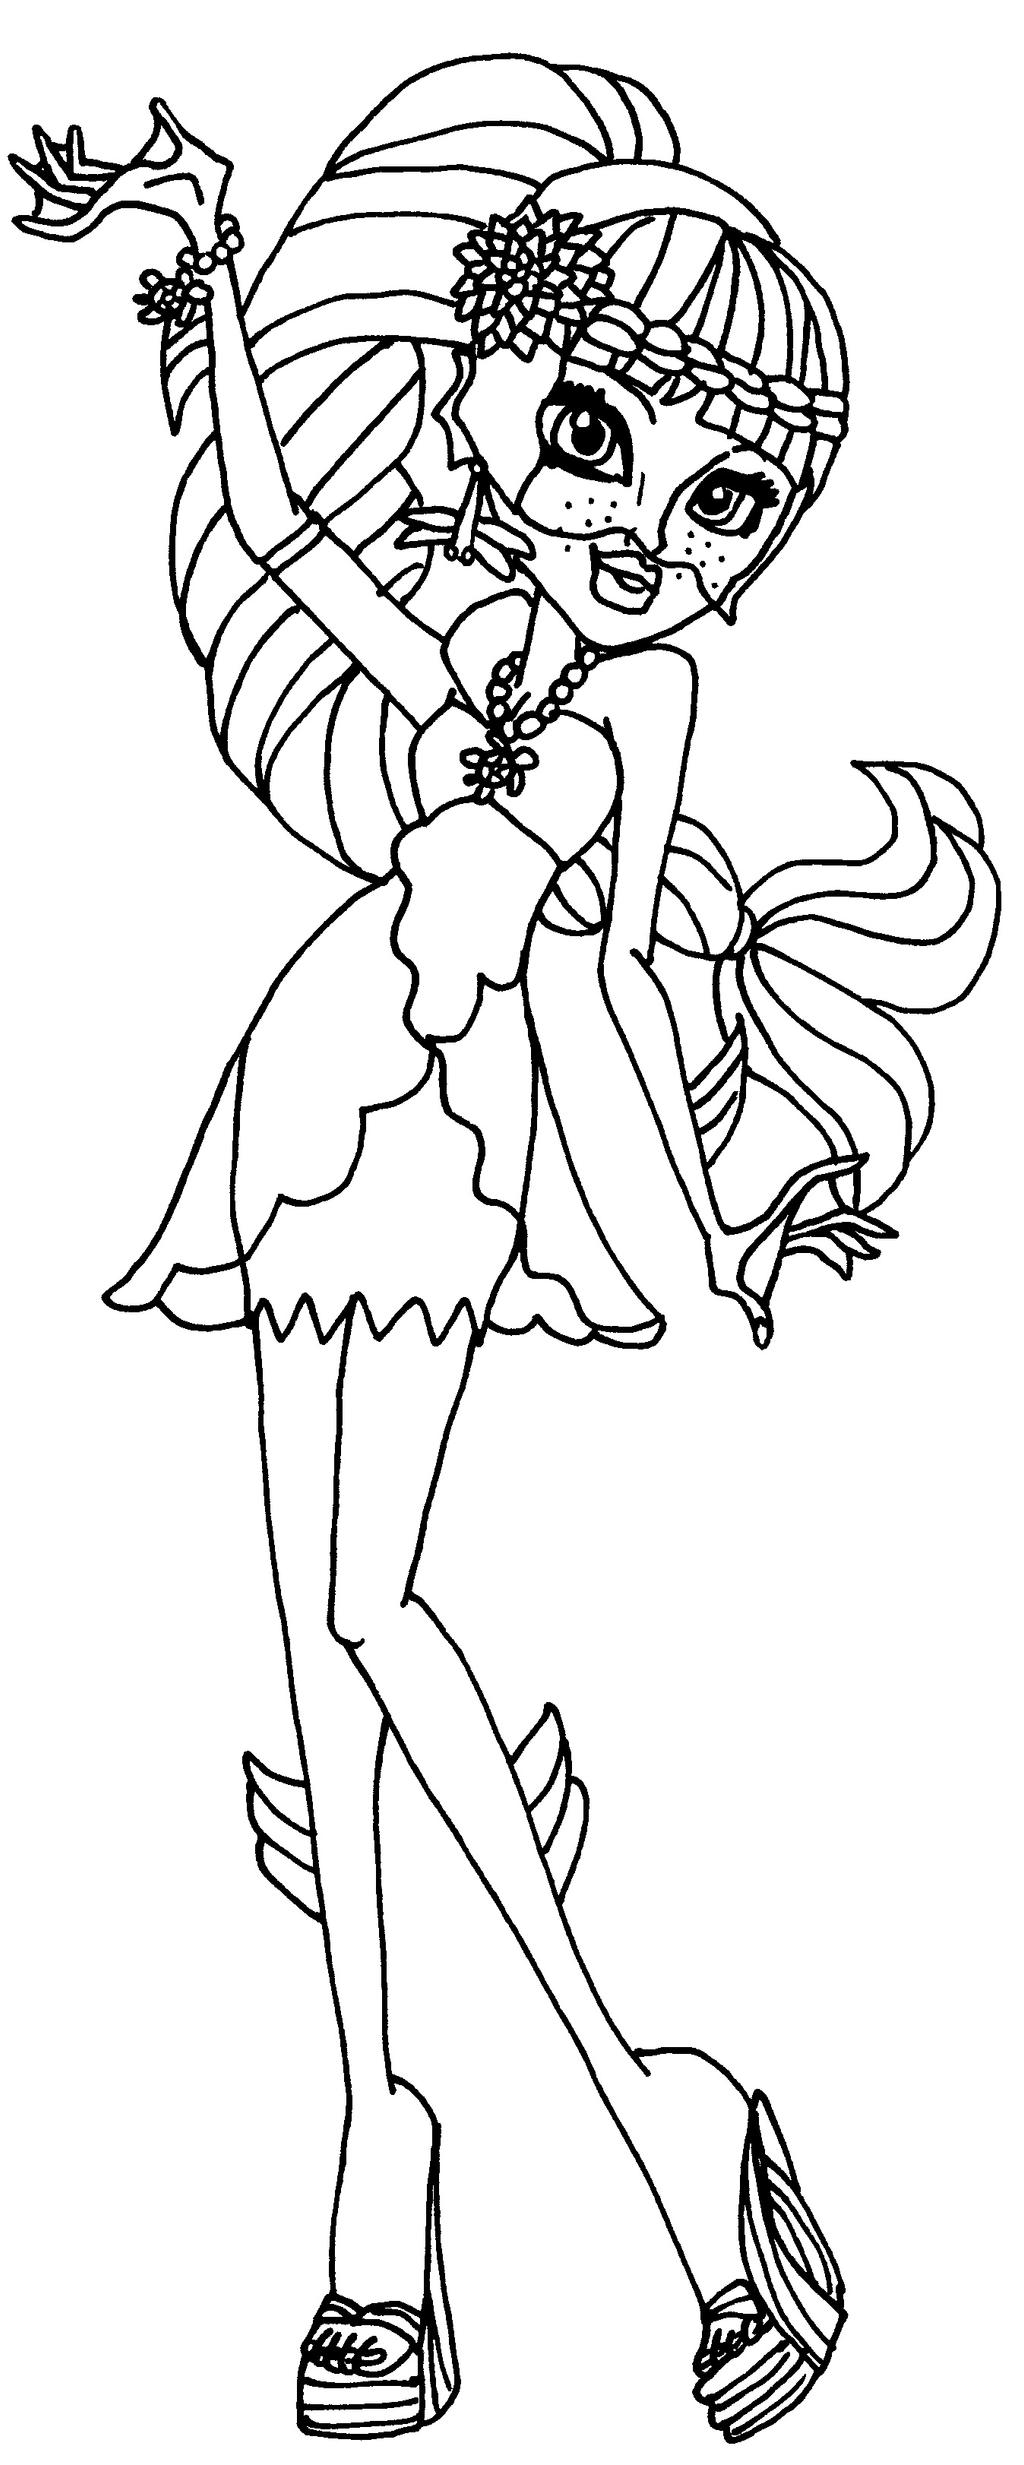 Lagoona 13 wishes by elfkena on deviantart for Monster high coloring pages 13 wishes